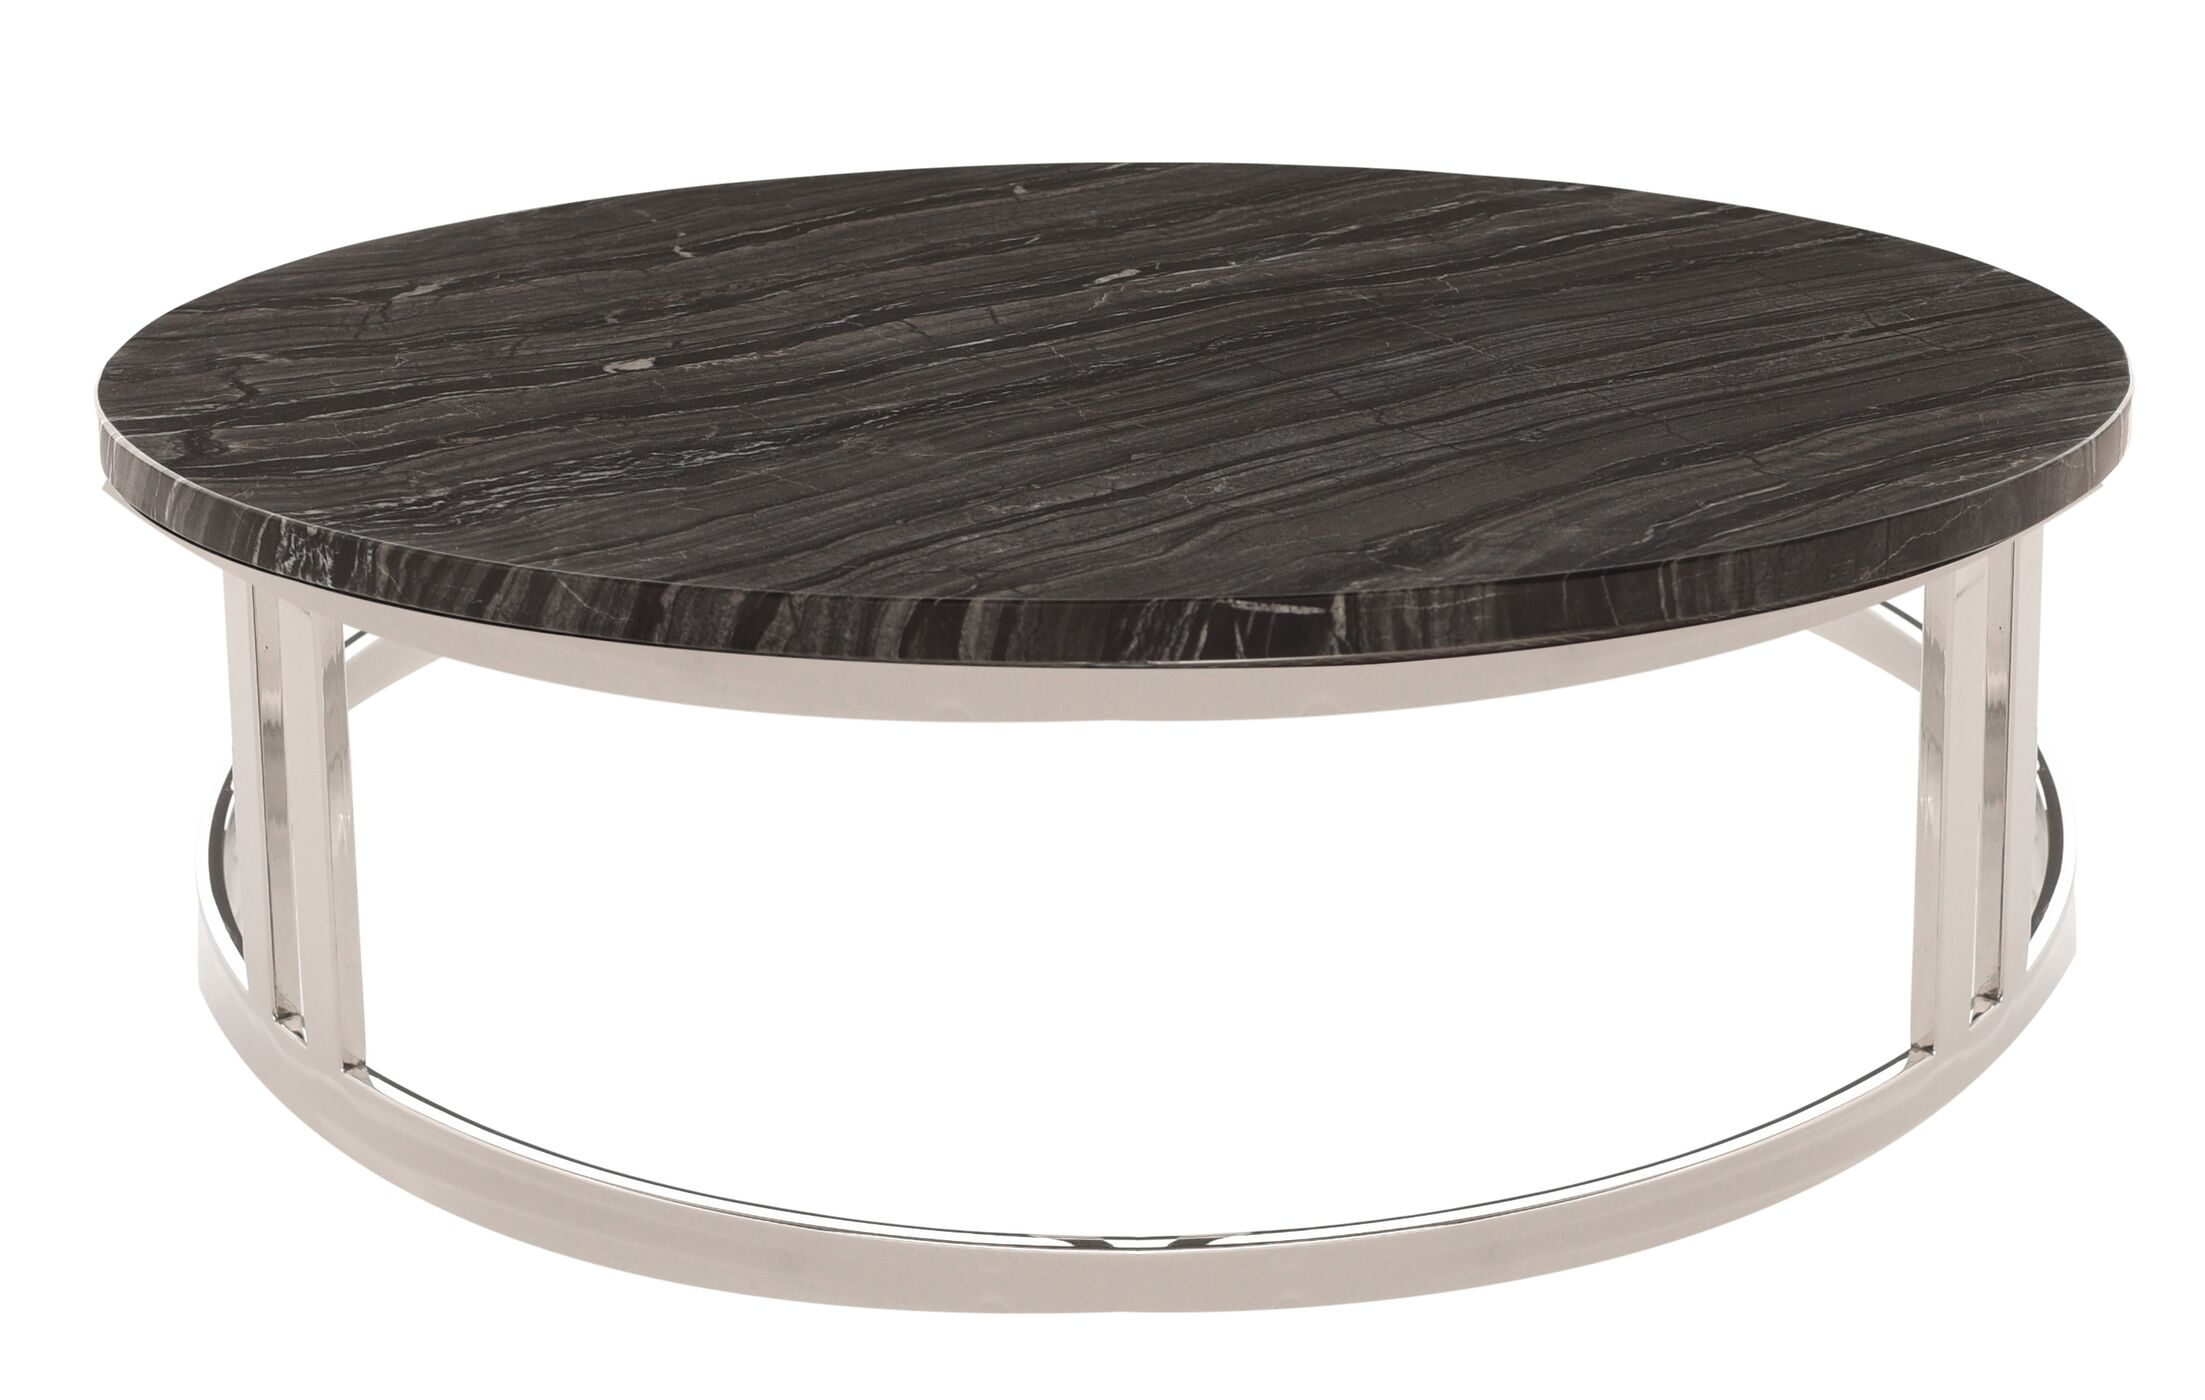 Noriega Coffee Table Table Top Color: Black, Table Base Color: Silver